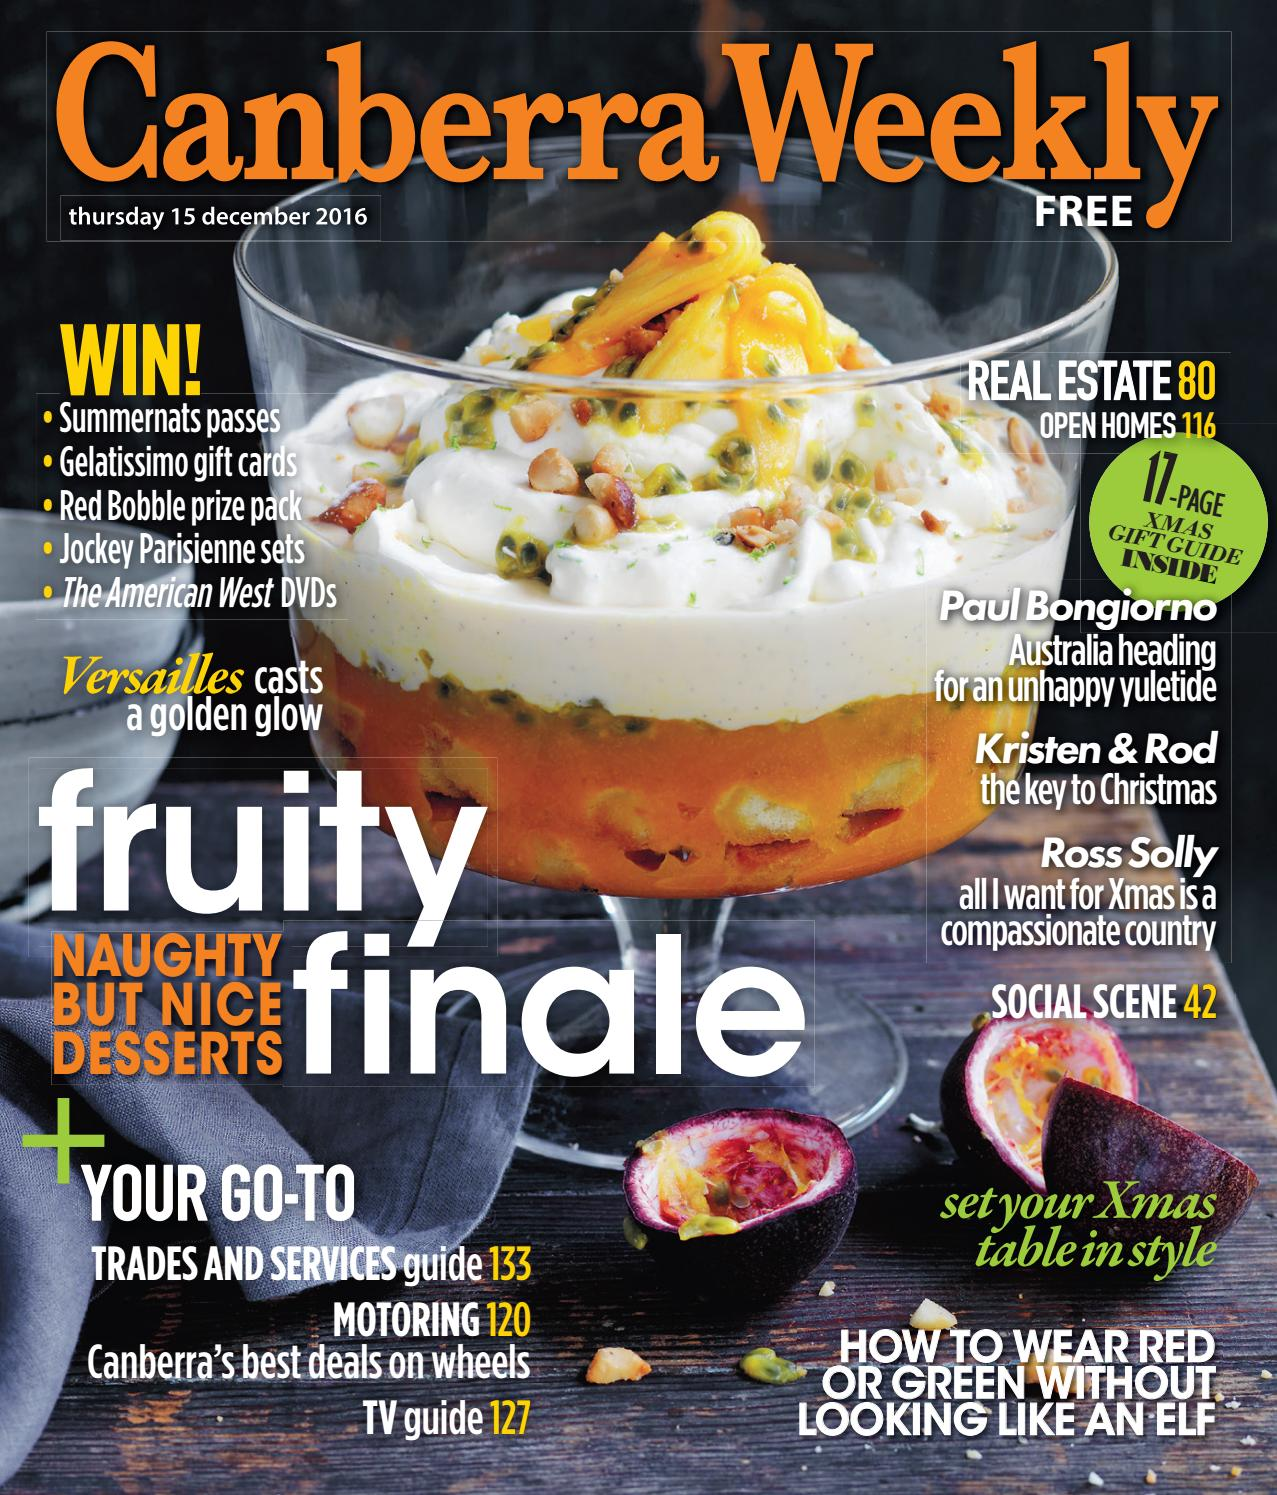 15 December 2016 By Canberra Weekly Magazine Issuu Pressure Cooker Tebus Double Pan Piknik Set Locksy